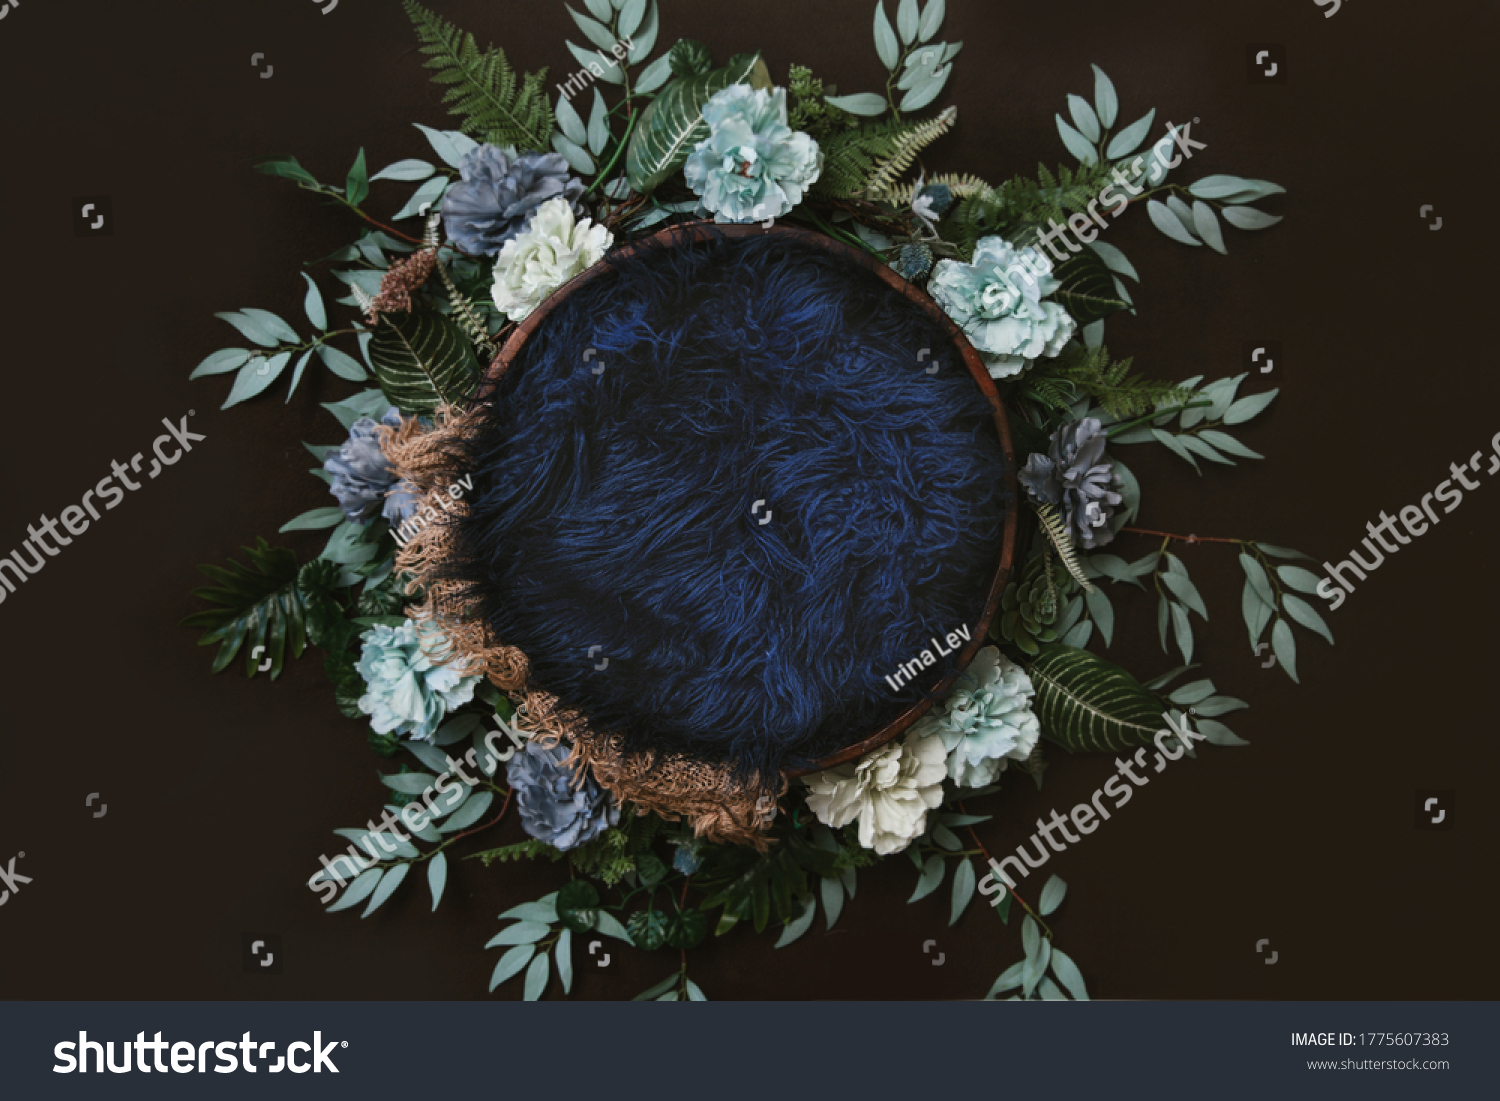 Newborn digital background - brown wooden bowl with green leaves wreath,  teal flowers and blue faux fur. #1775607383